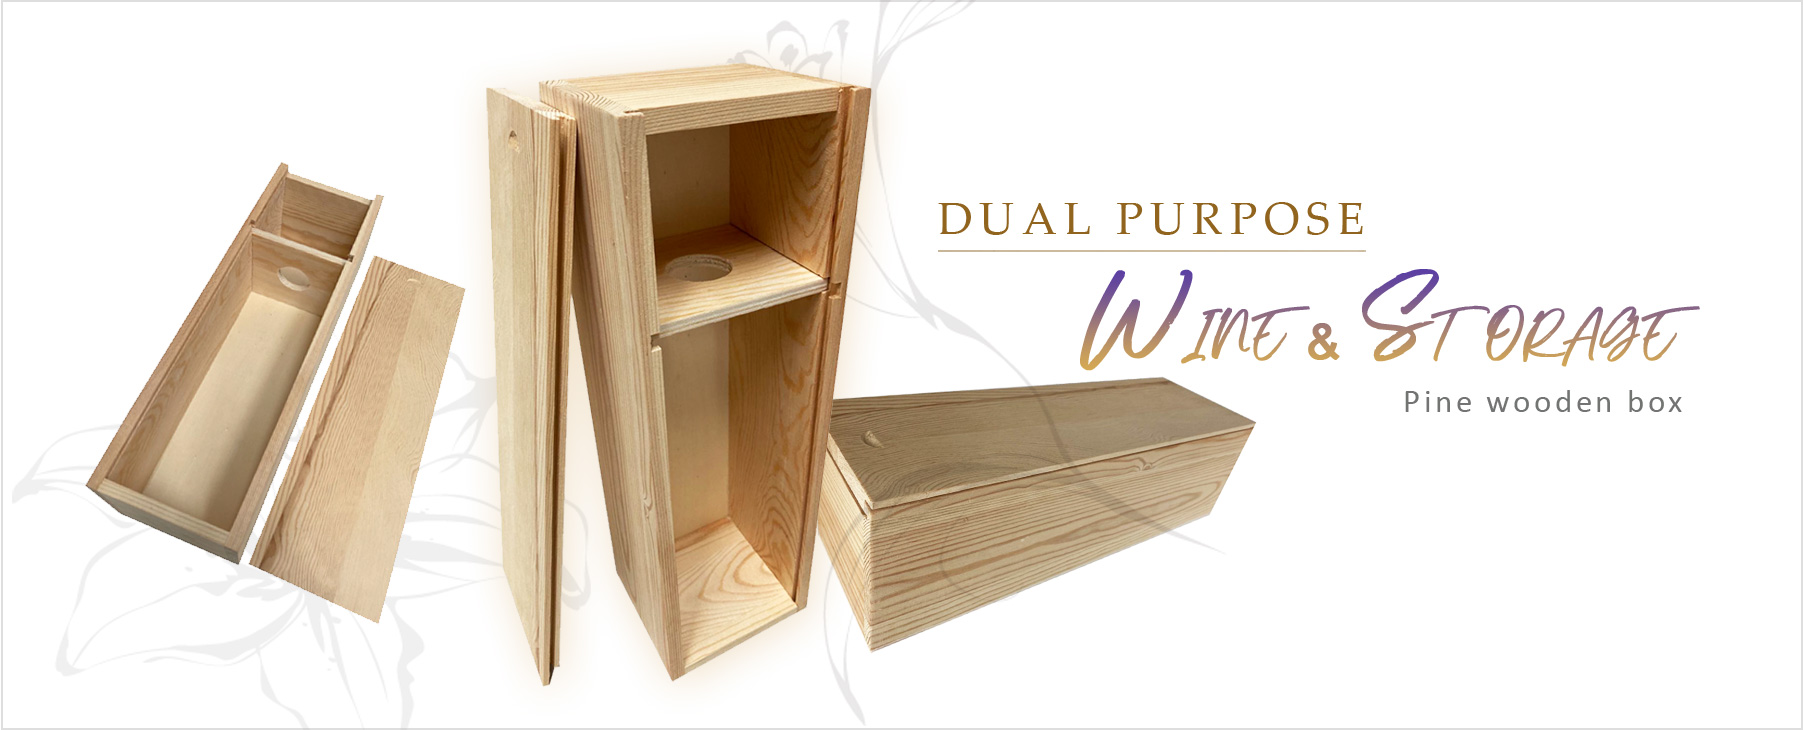 Dual Purpose Box For Wine And Storage